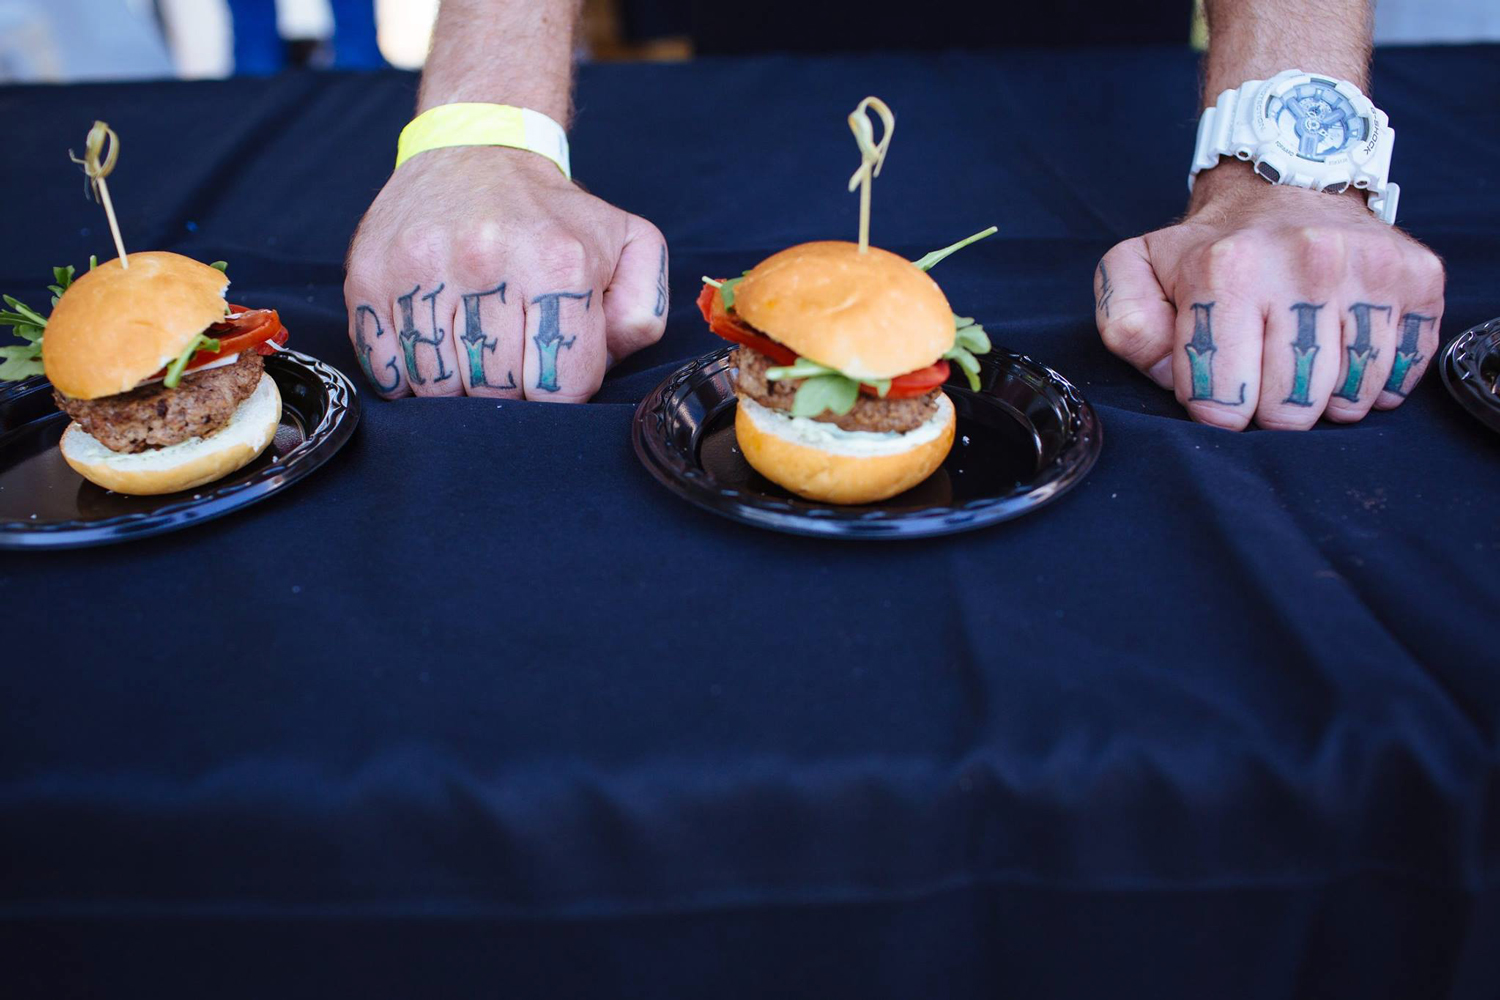 Burgers-and-Beer-Best-Of-Photos-for-Web-(23-of-25).jpg